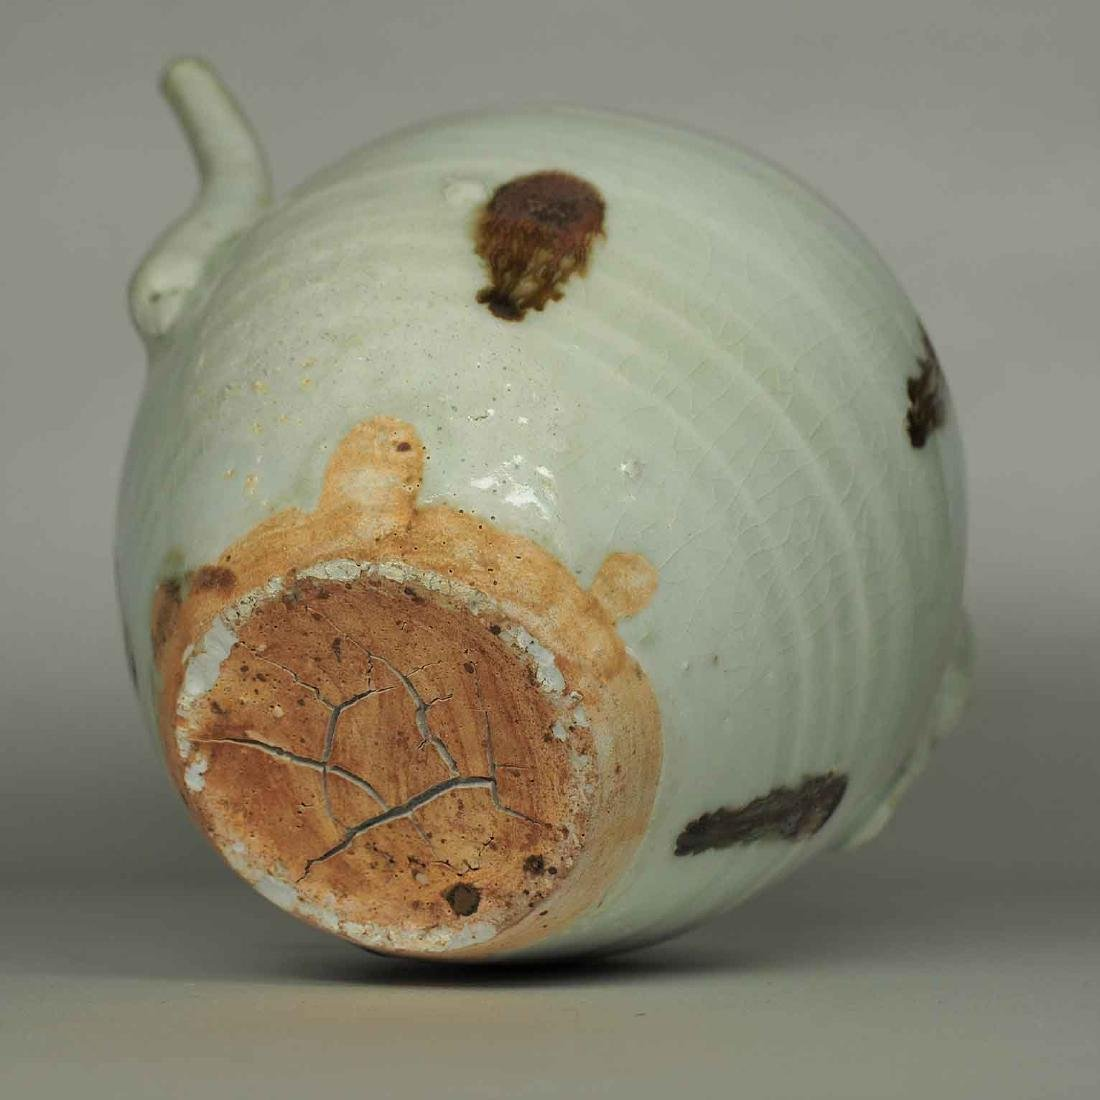 Ewer with Brown Spot, Yuan Dynasty - 13